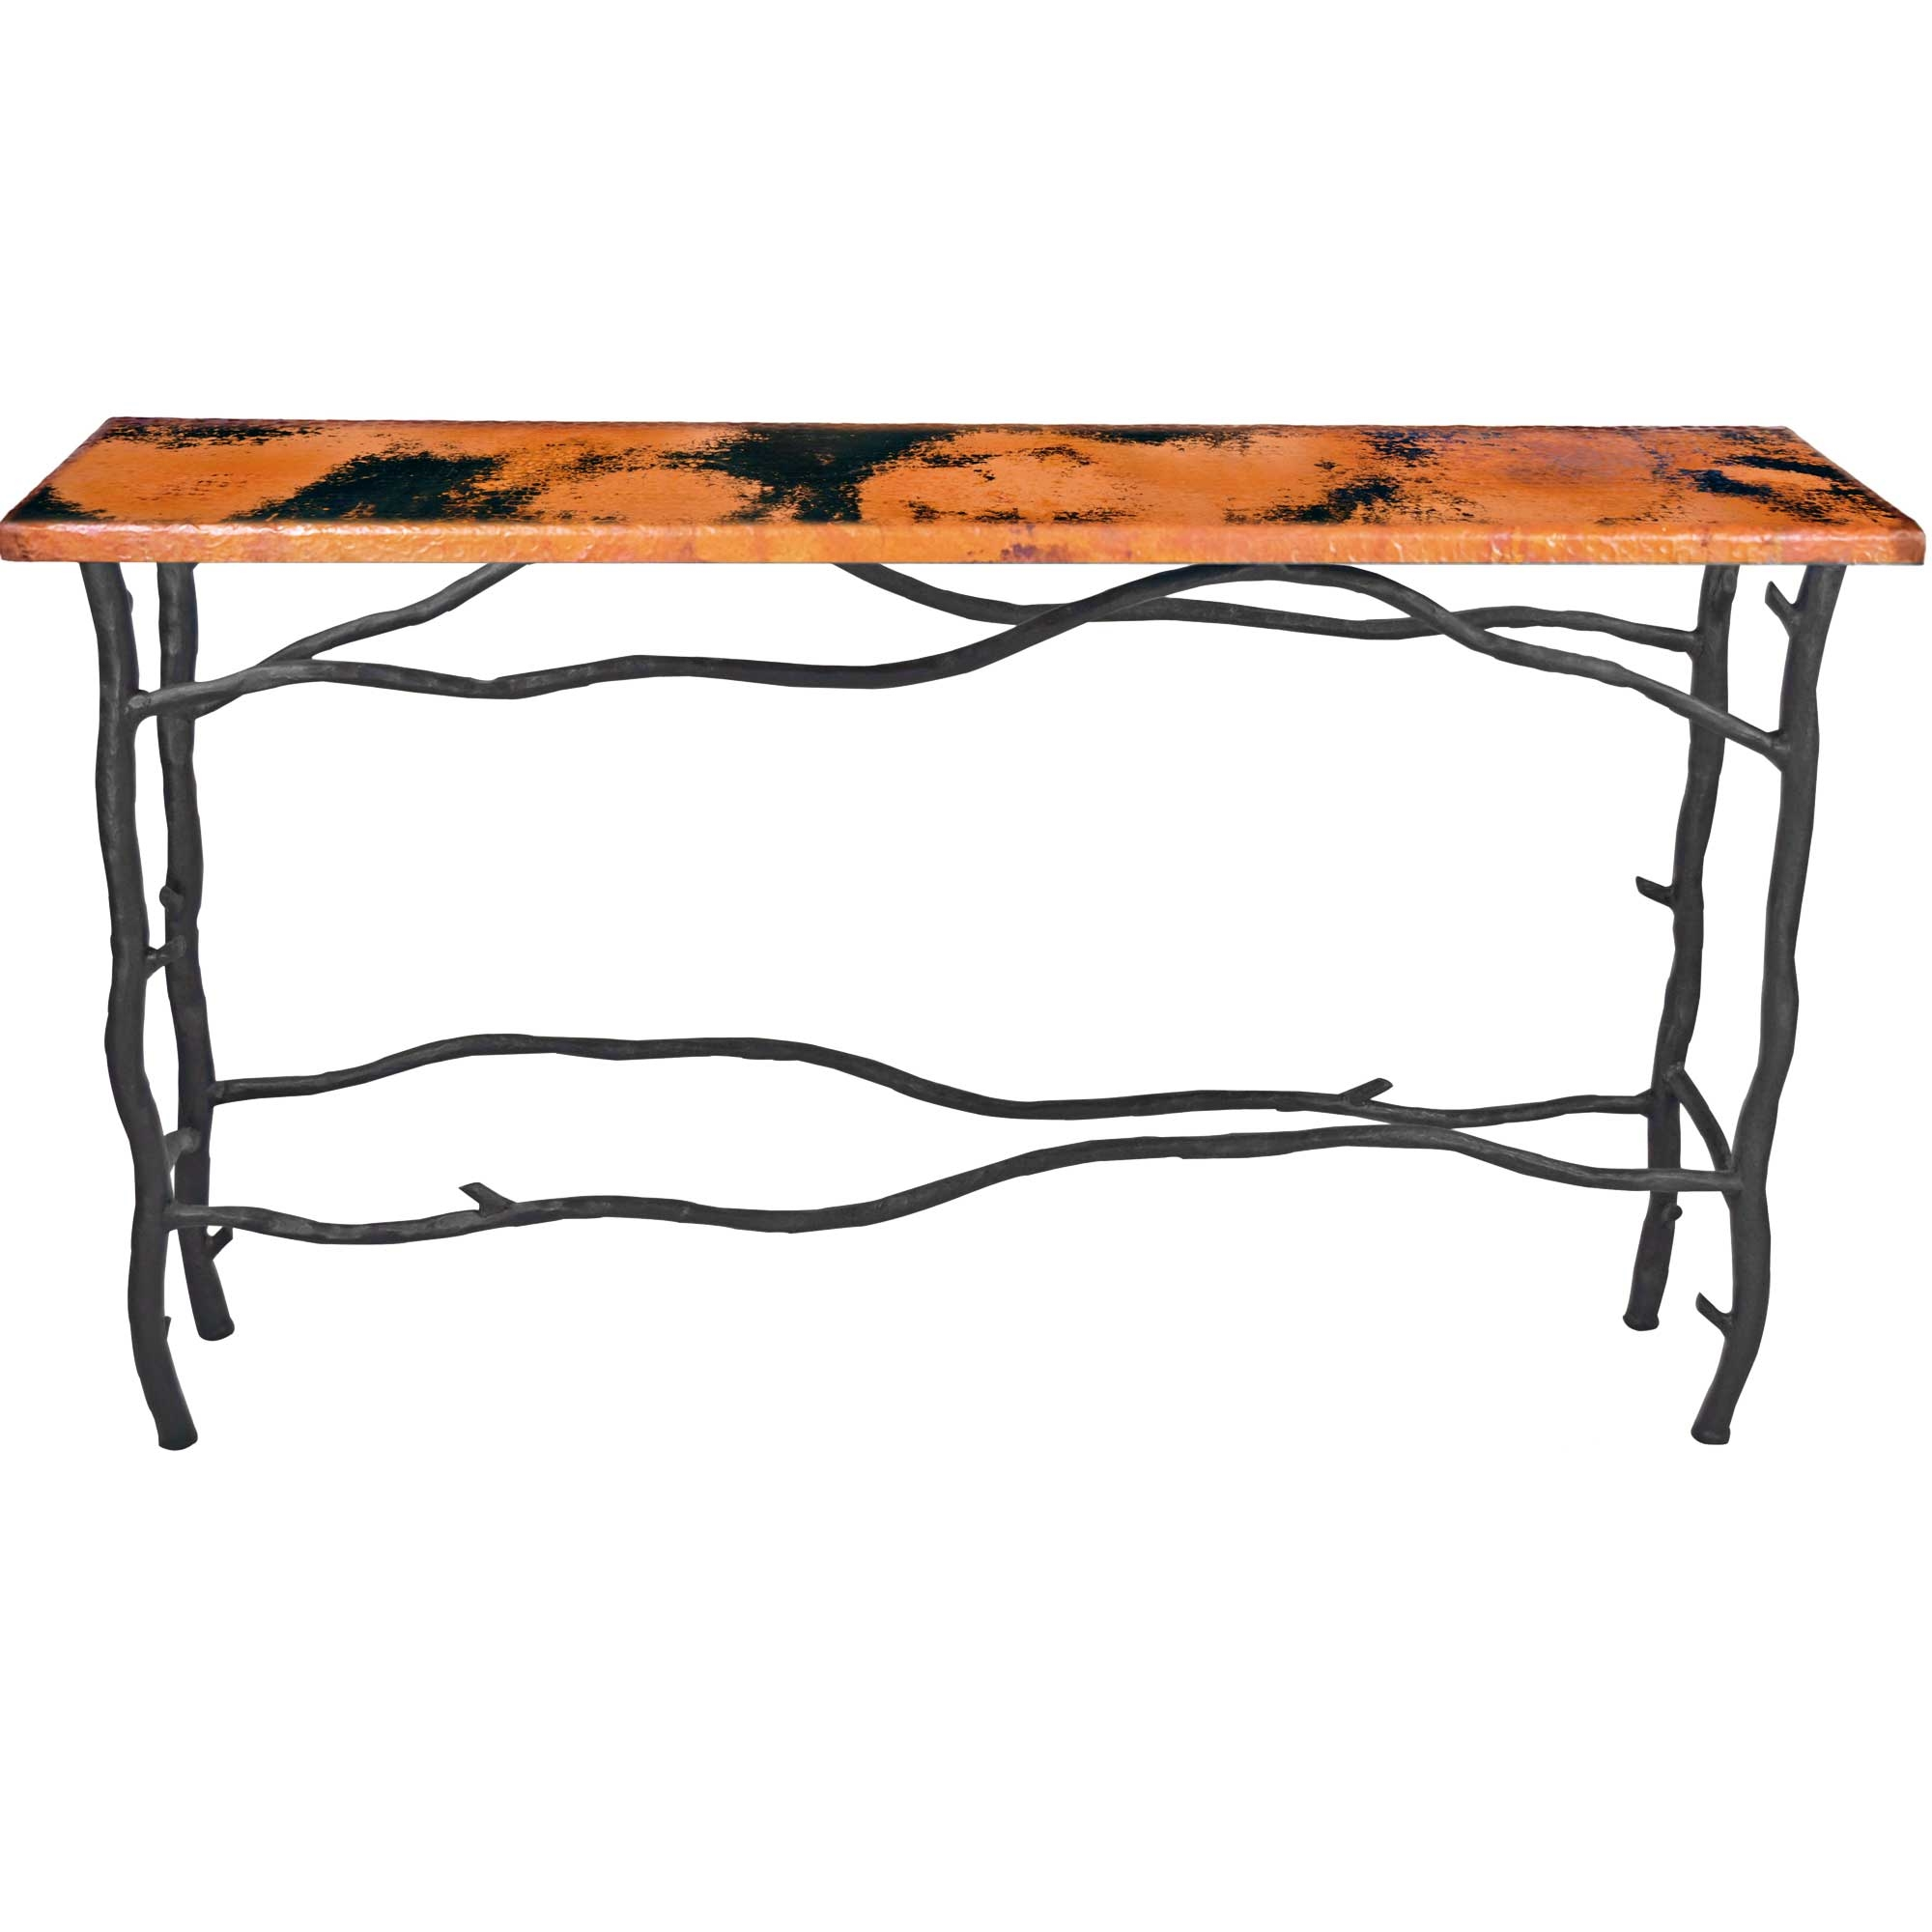 Rustic Wrought Iron South Fork Console Table with 20 Top  : TWI 20 351 2 from www.timelesswroughtiron.com size 2000 x 2000 jpeg 366kB